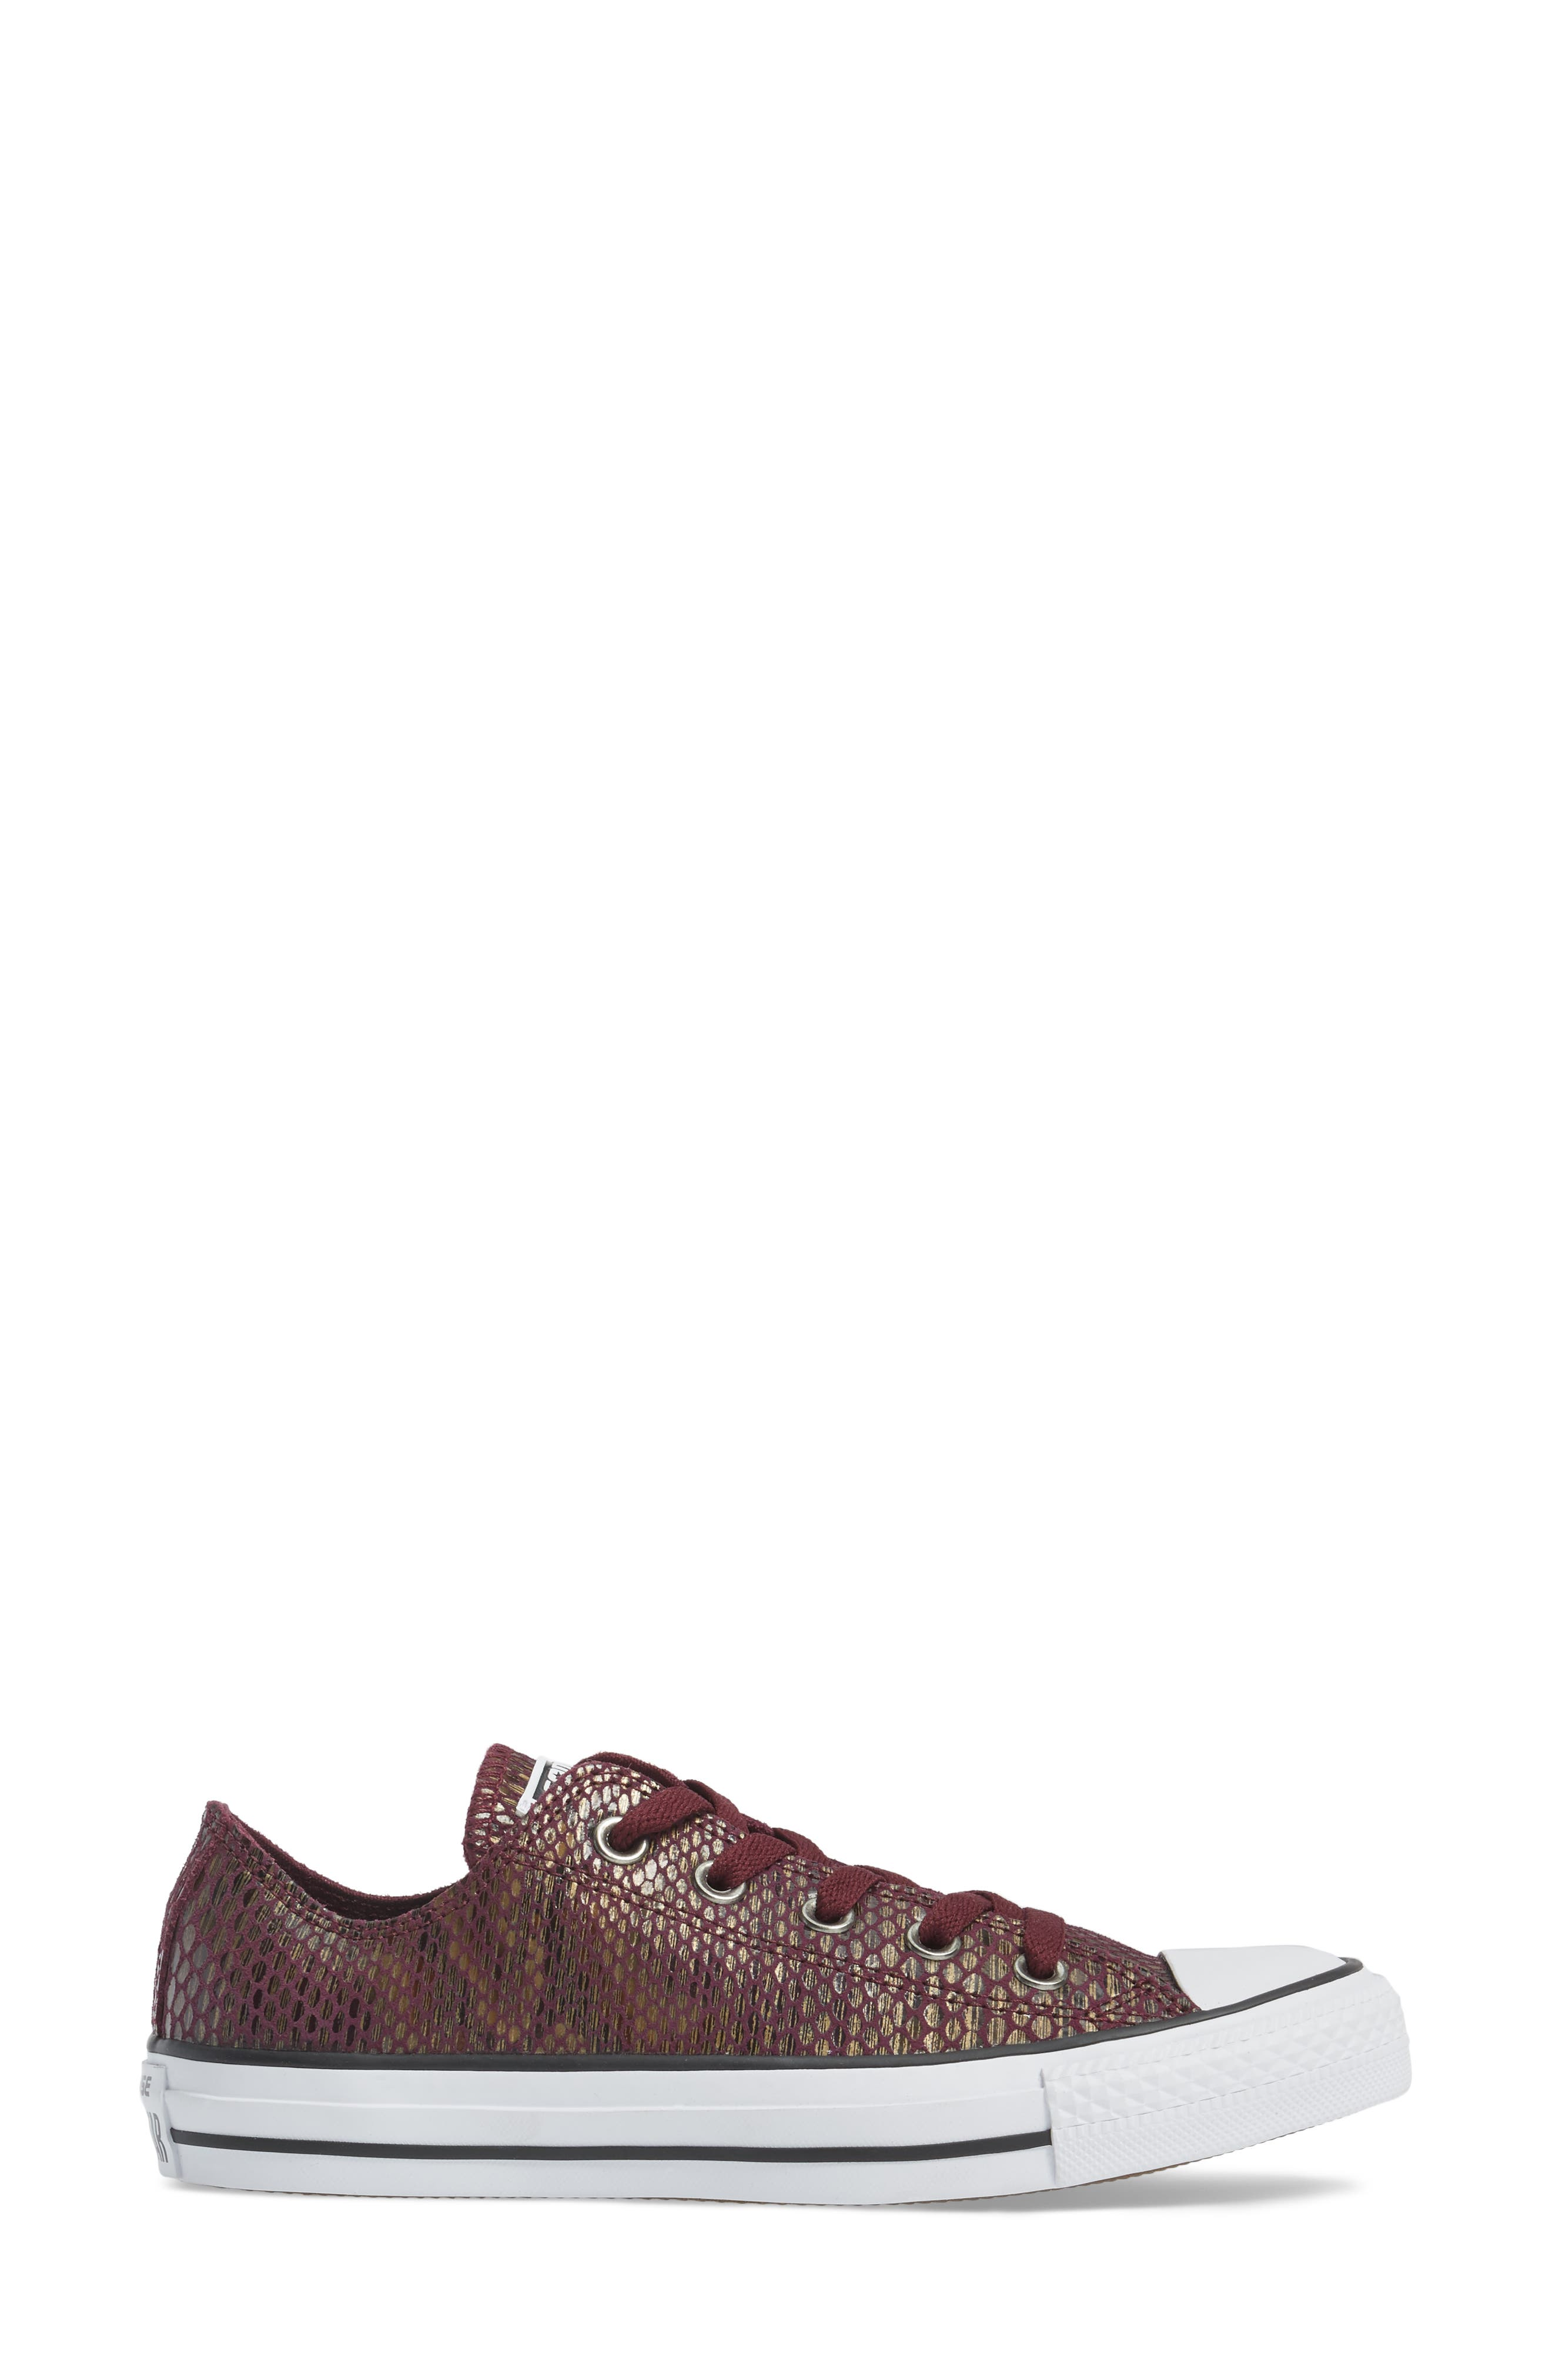 Chuck Taylor<sup>®</sup> All Star<sup>®</sup> Ox Leather Sneaker,                             Alternate thumbnail 6, color,